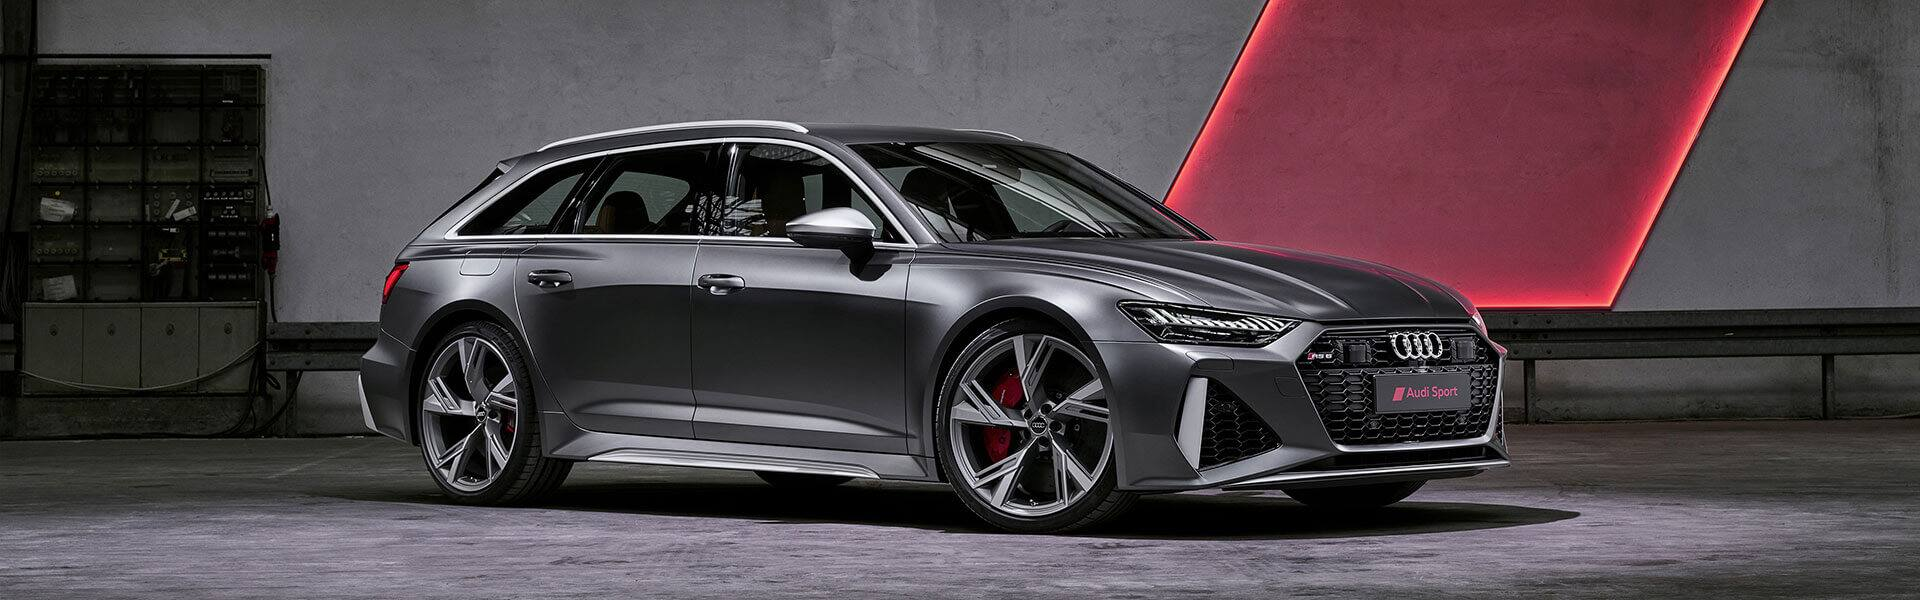 Audi RS 6 Avant 2020 in garage with rombus